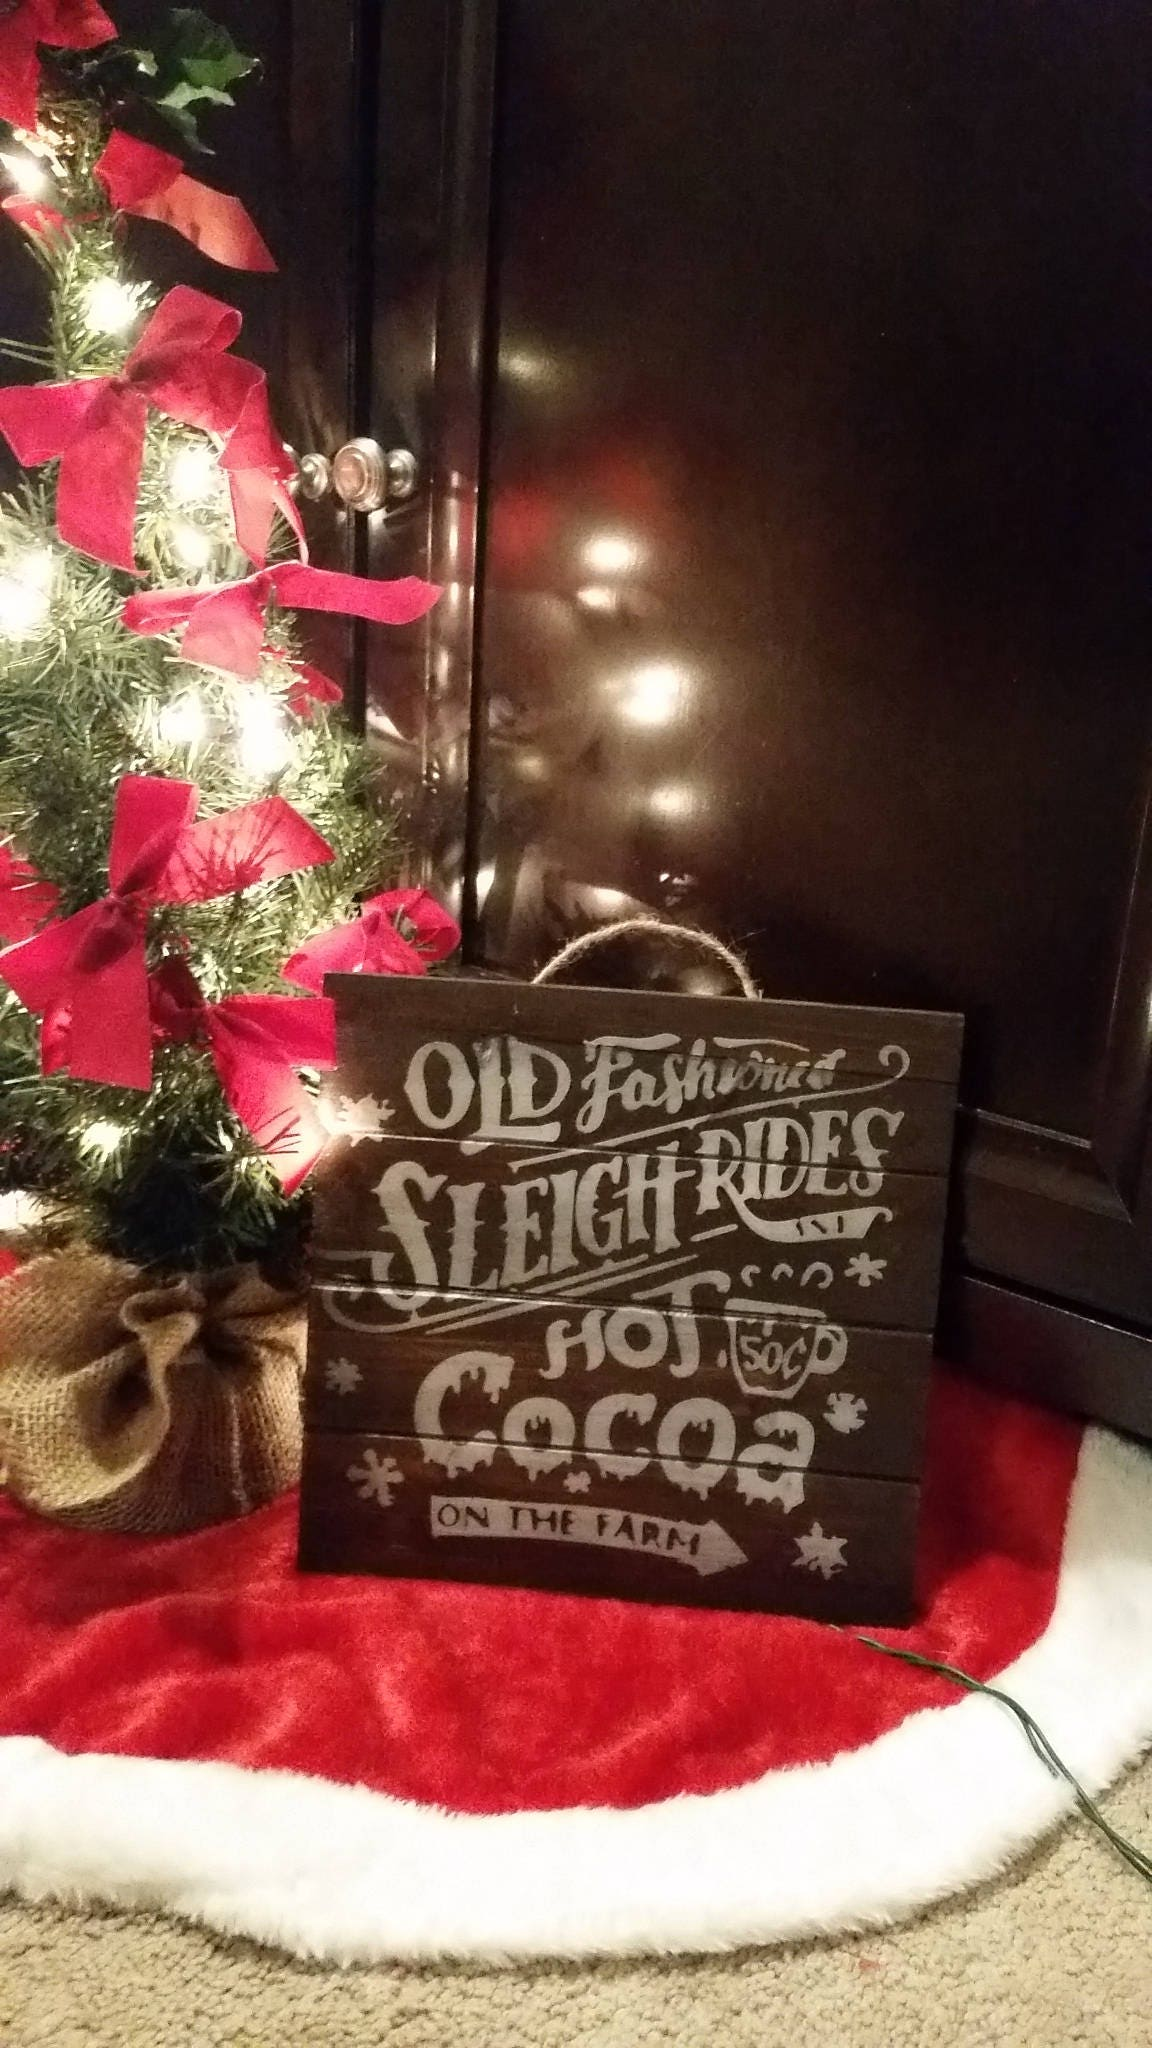 Christmas farm sign old fashioned sleigh rides hot cocoa